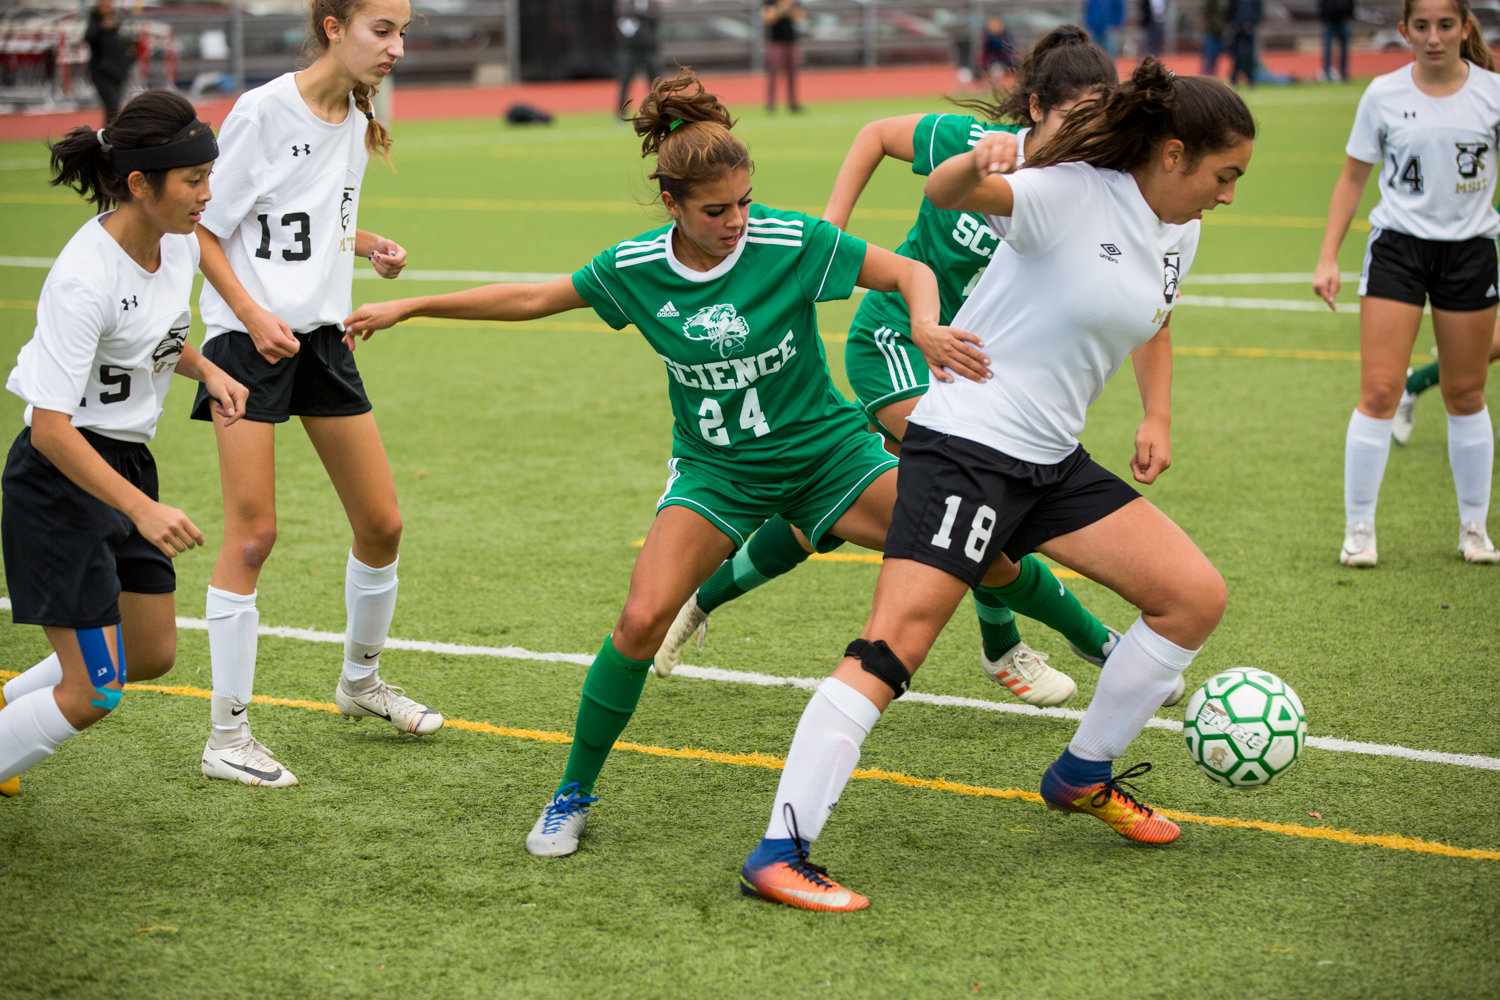 Bronx Science senior Ruby Hogue led the Wolverines with four shots on goal in Science's 2-0 loss to Francis Lewis in the PSAL quarterfinals.